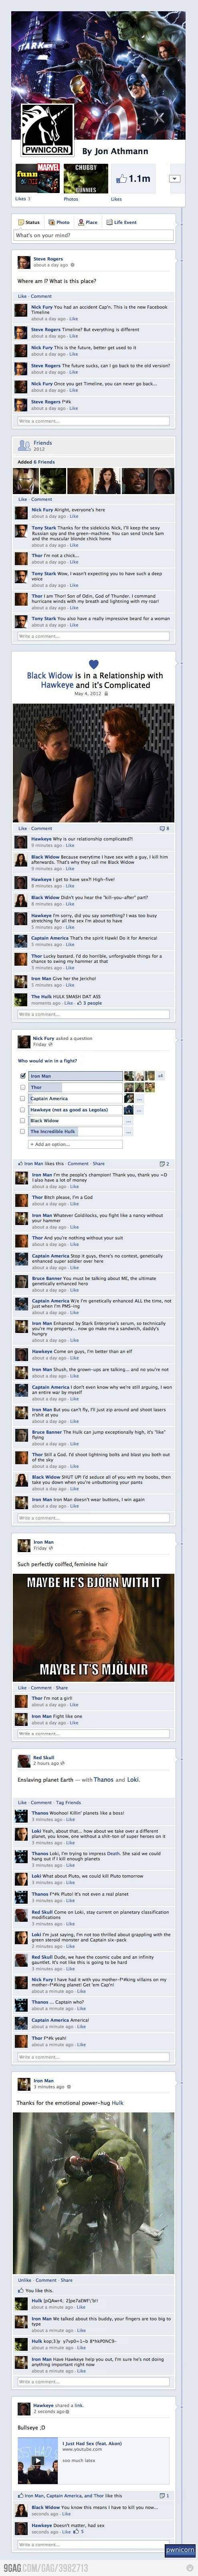 The Avengers on facebook humor